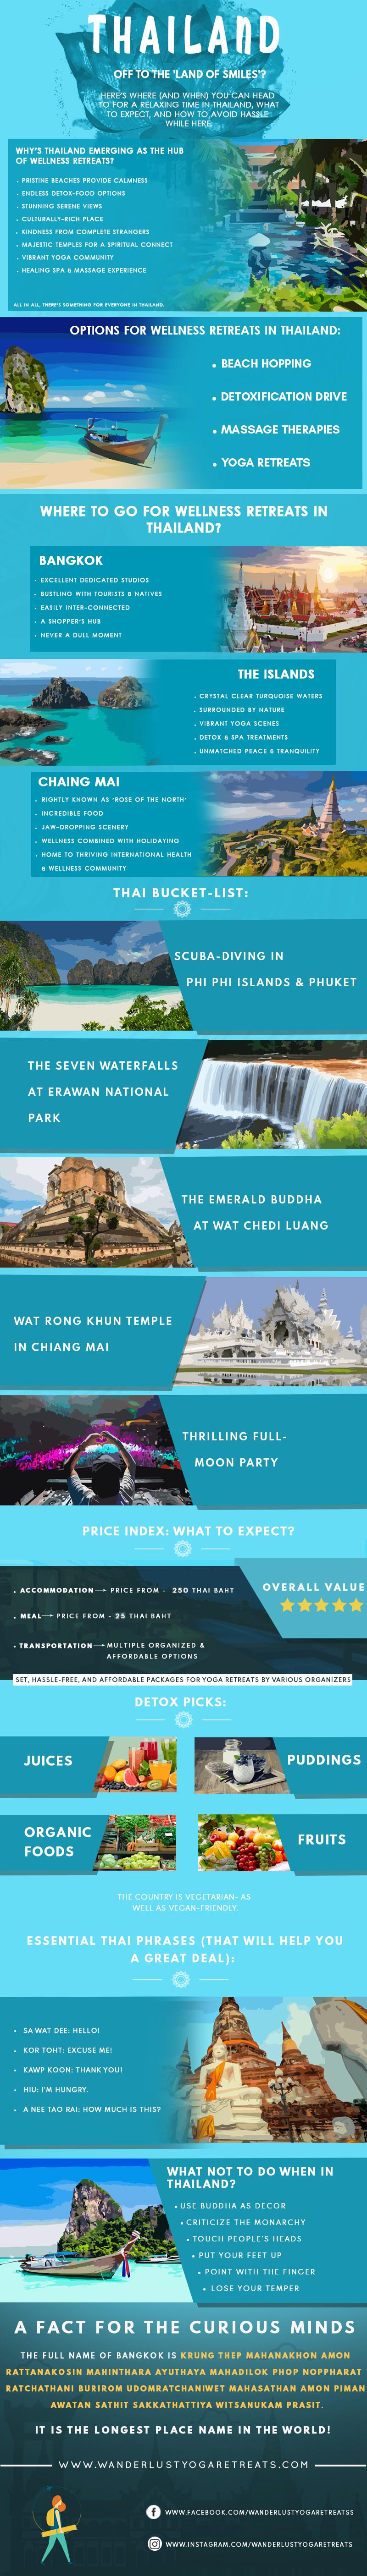 Thailand: The Land that Makes You Happy - Infographic